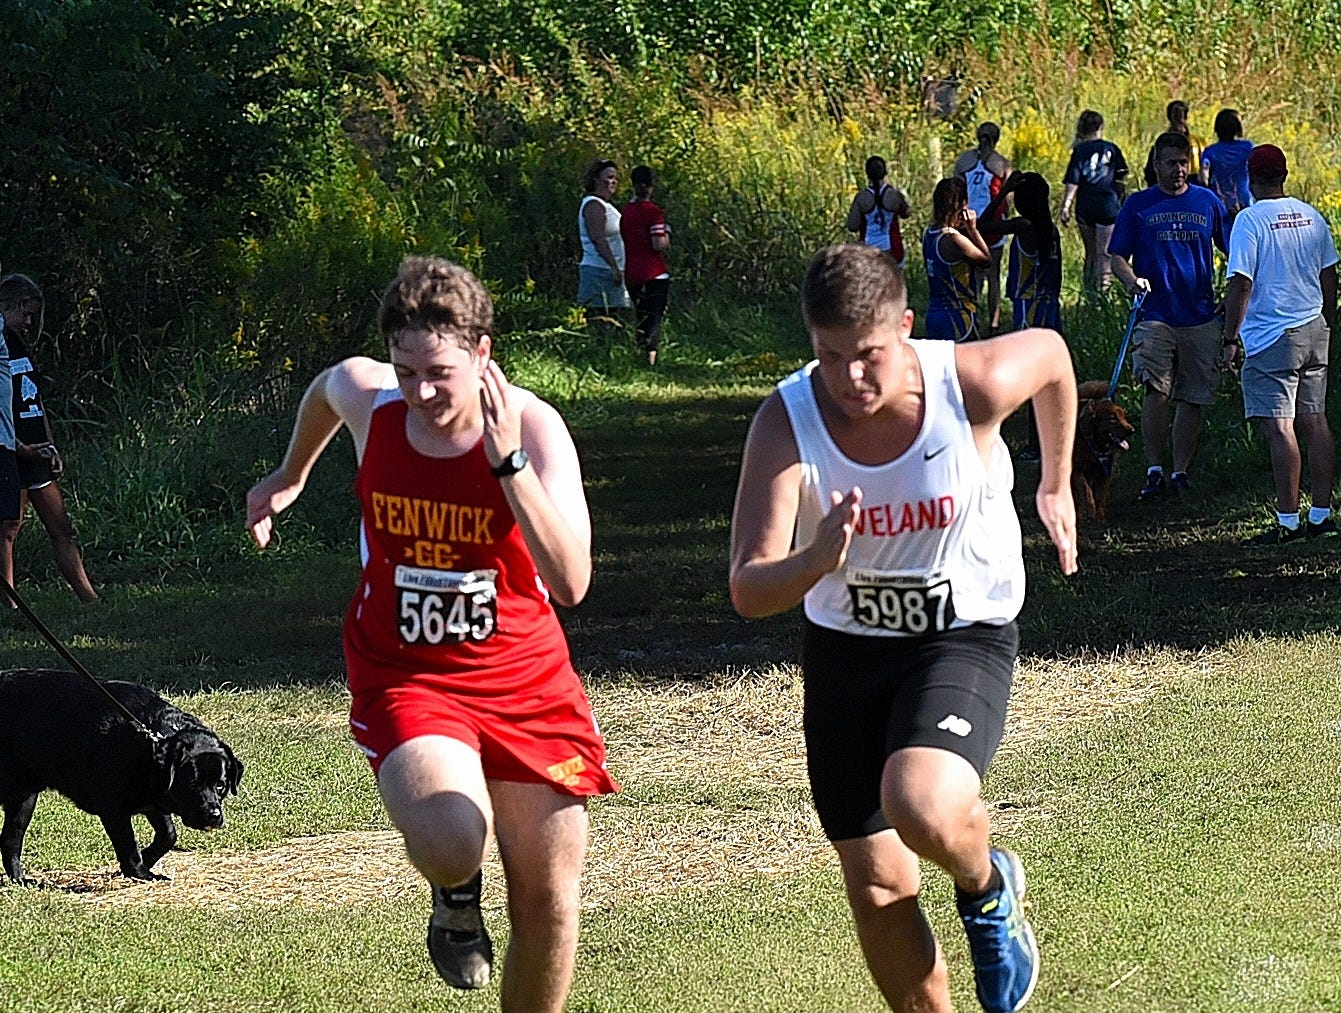 Fenwick's Matthew Buzek and Loveland's Dylan Sams race hard to the finish at the 2018 Milford Cross Country Invitational, Sept. 15, 2018.